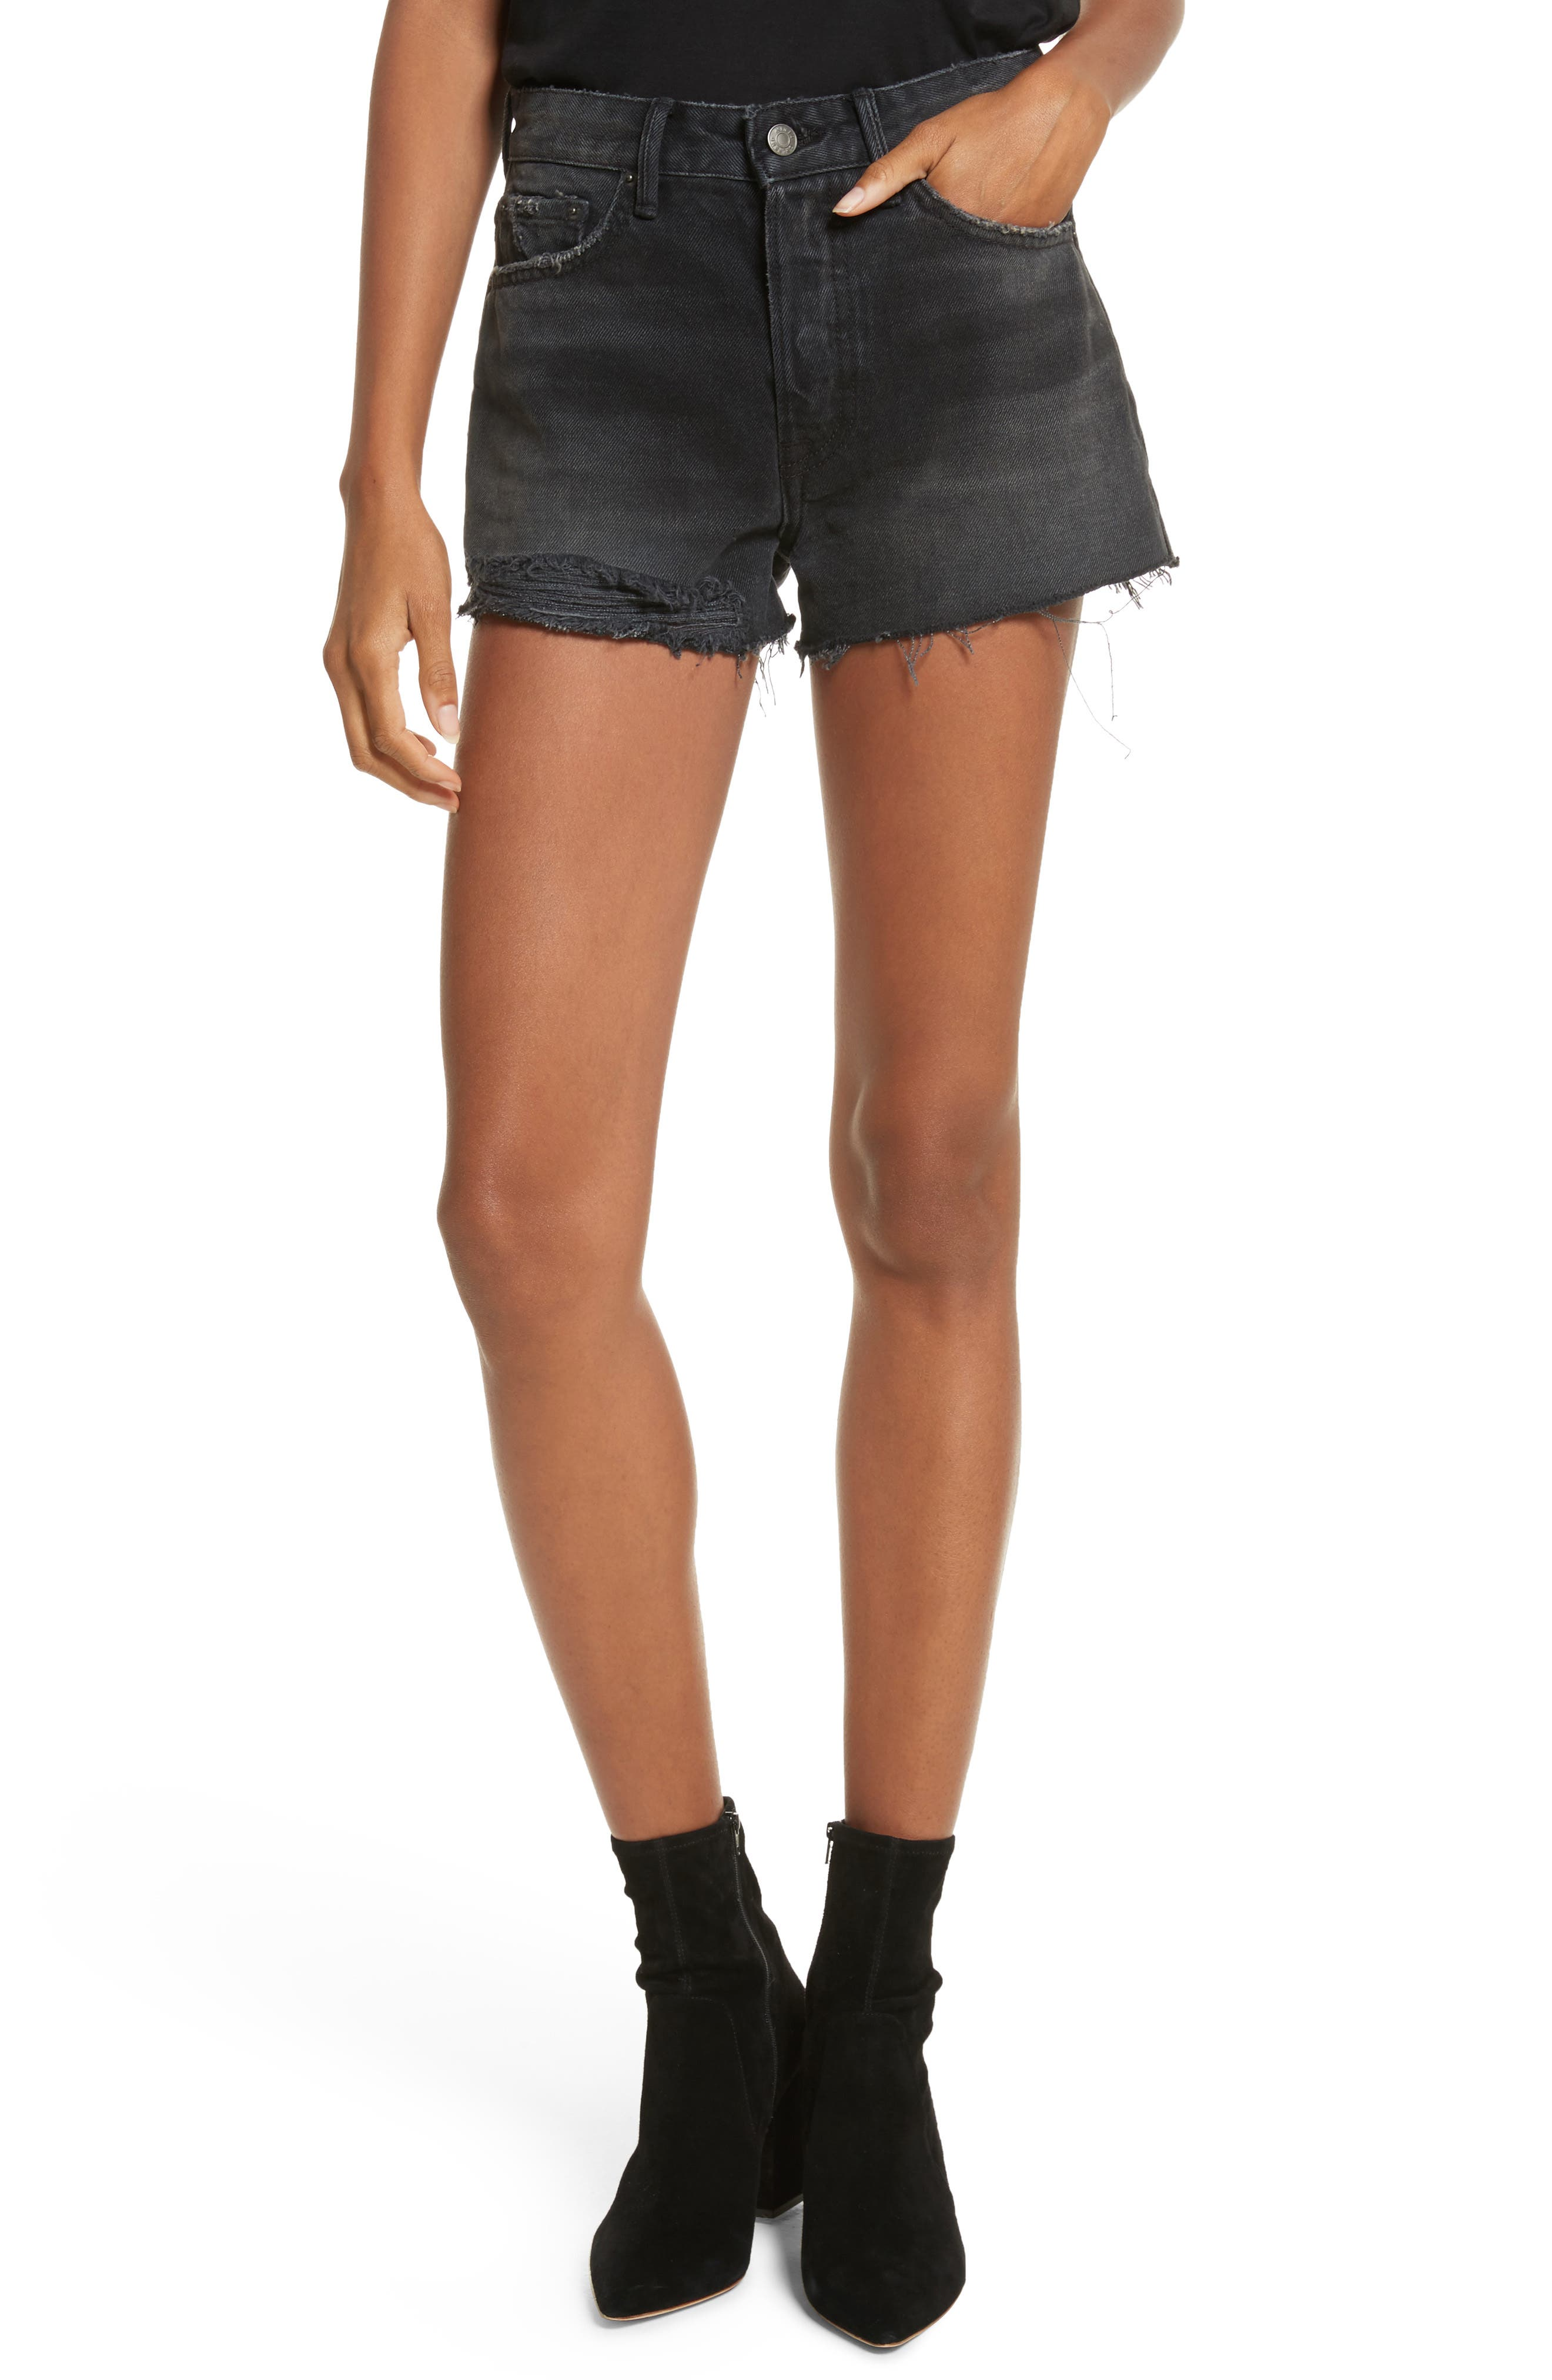 Cindy Rigid High Waist Denim Shorts,                             Main thumbnail 1, color,                             007